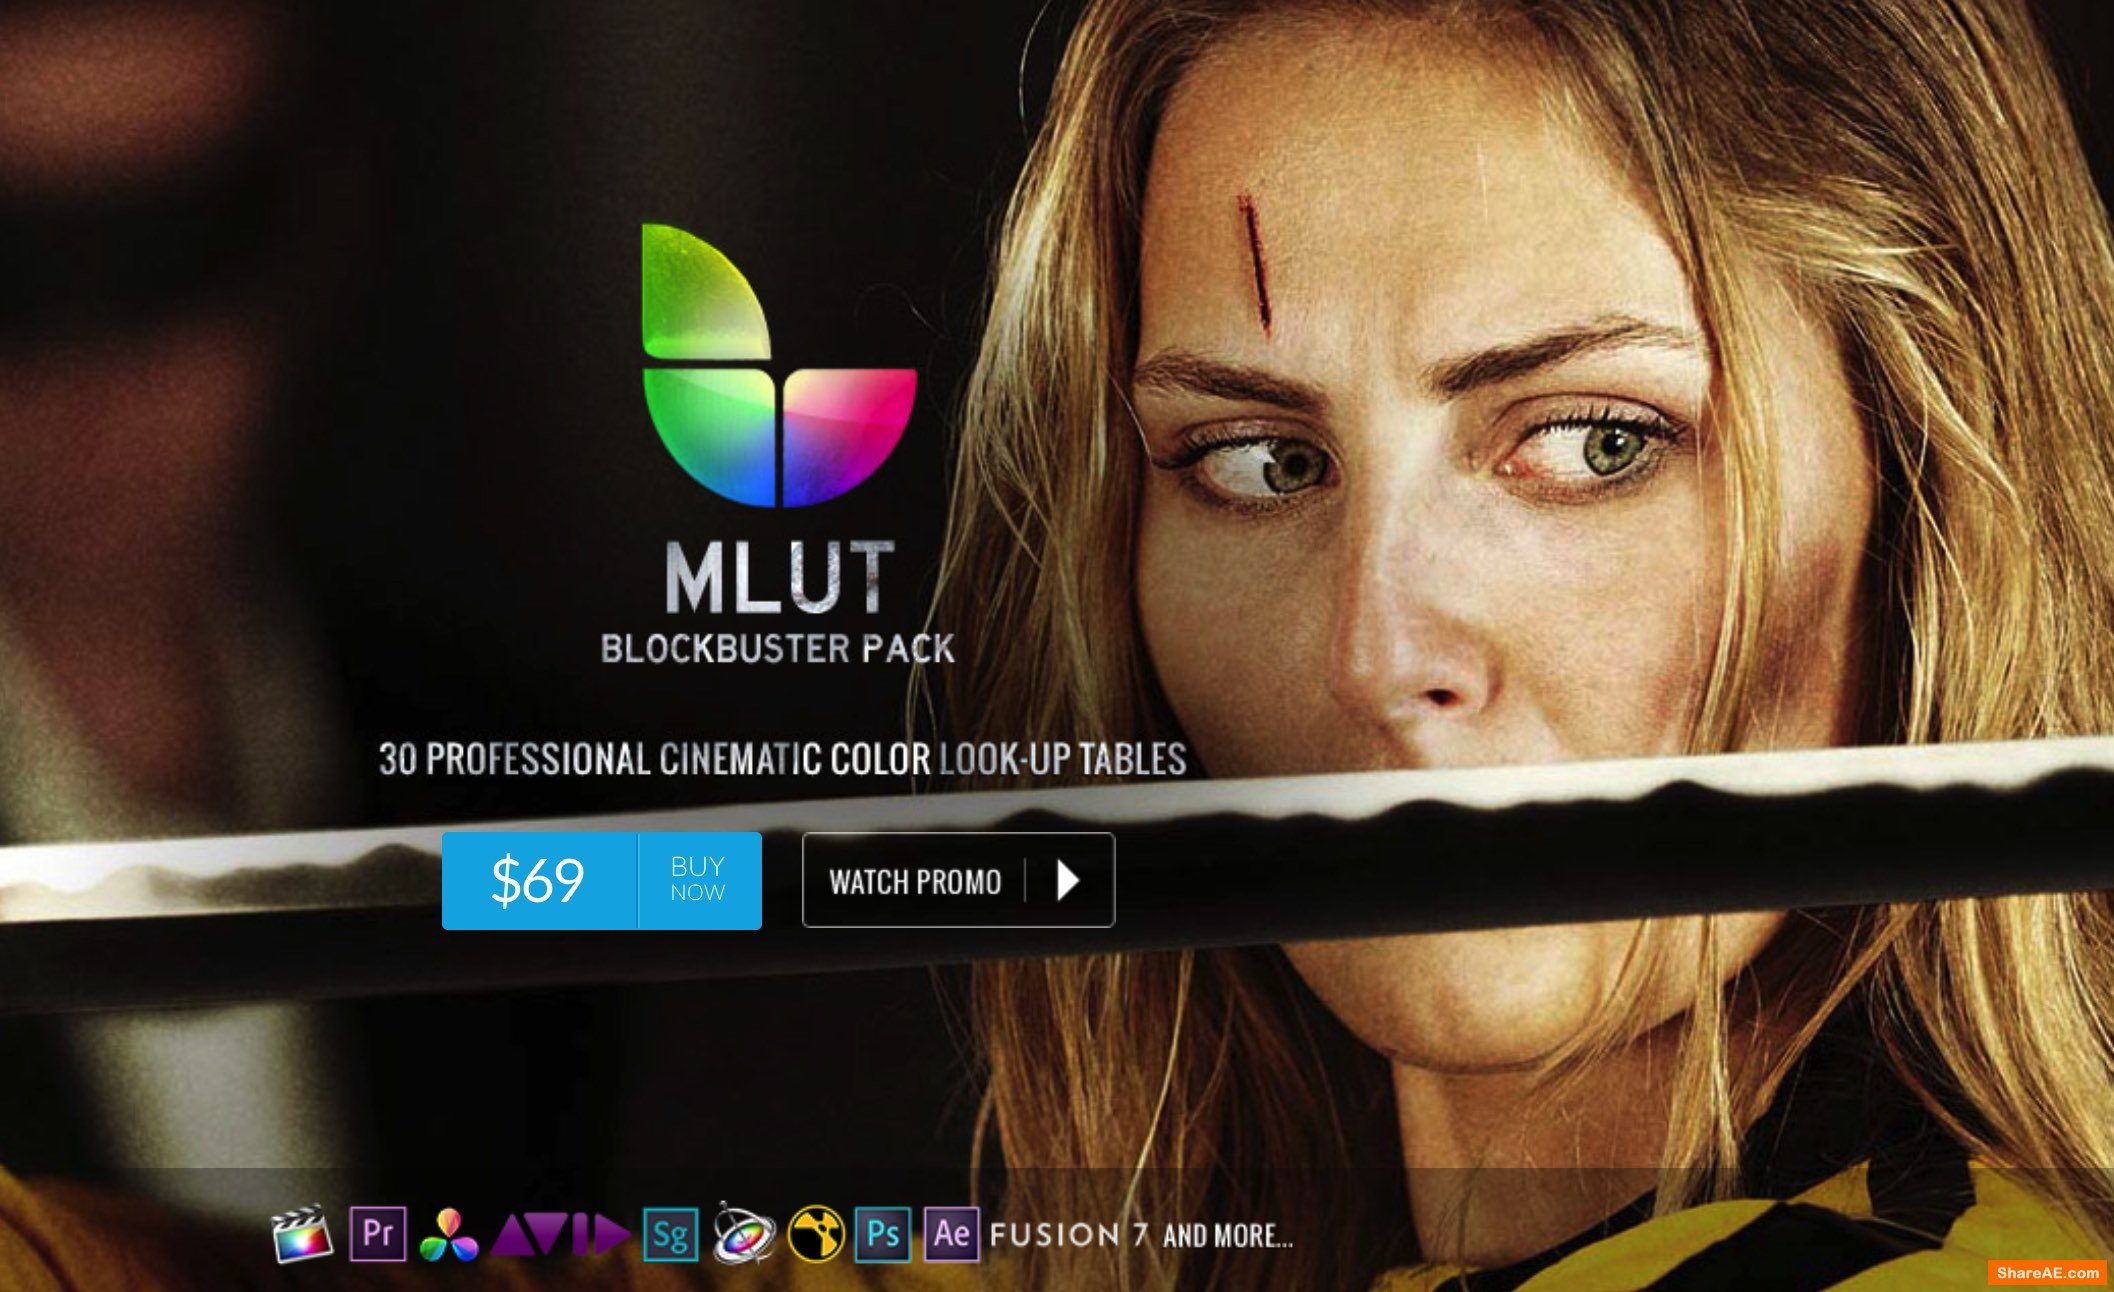 mLUT Blockbuster Pack - 30 Professional Cinematic Color Look-Up Tables - MotionVFX